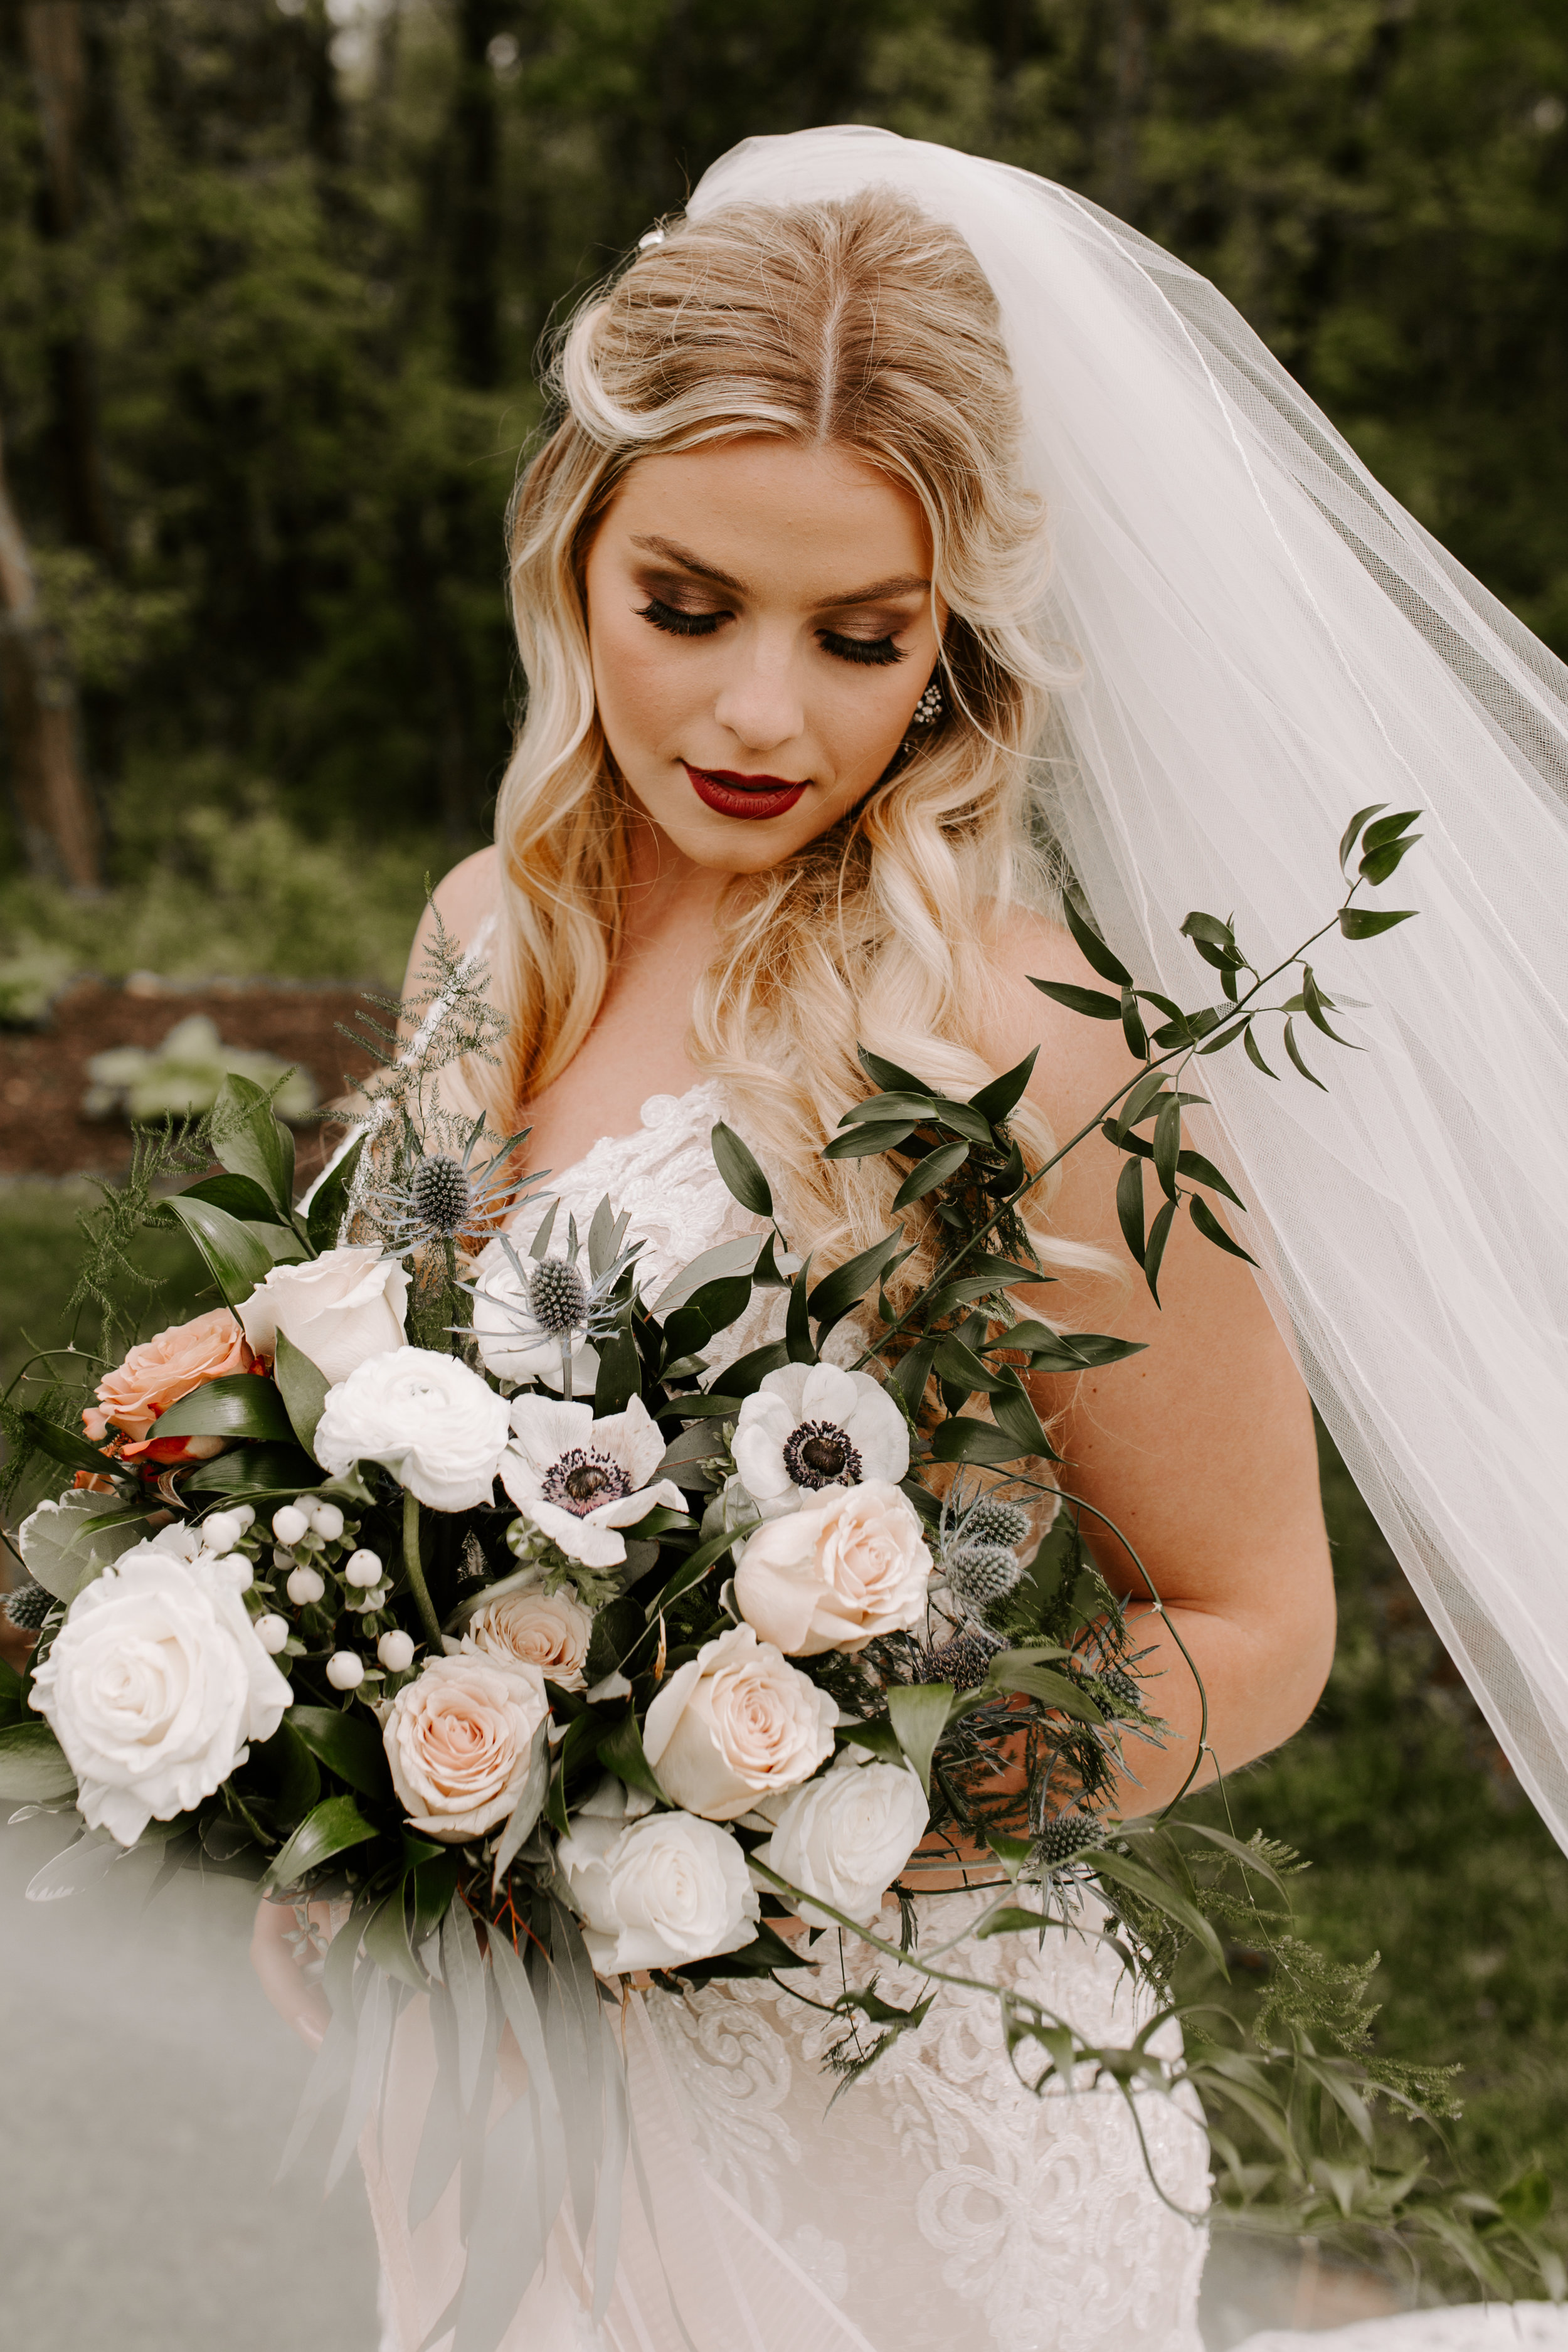 Bride with bouquet in blush at Country Lane Lodge, holding bouquet with anemones and blush roses, bridal gown from Weddings by Design in West Des Moines